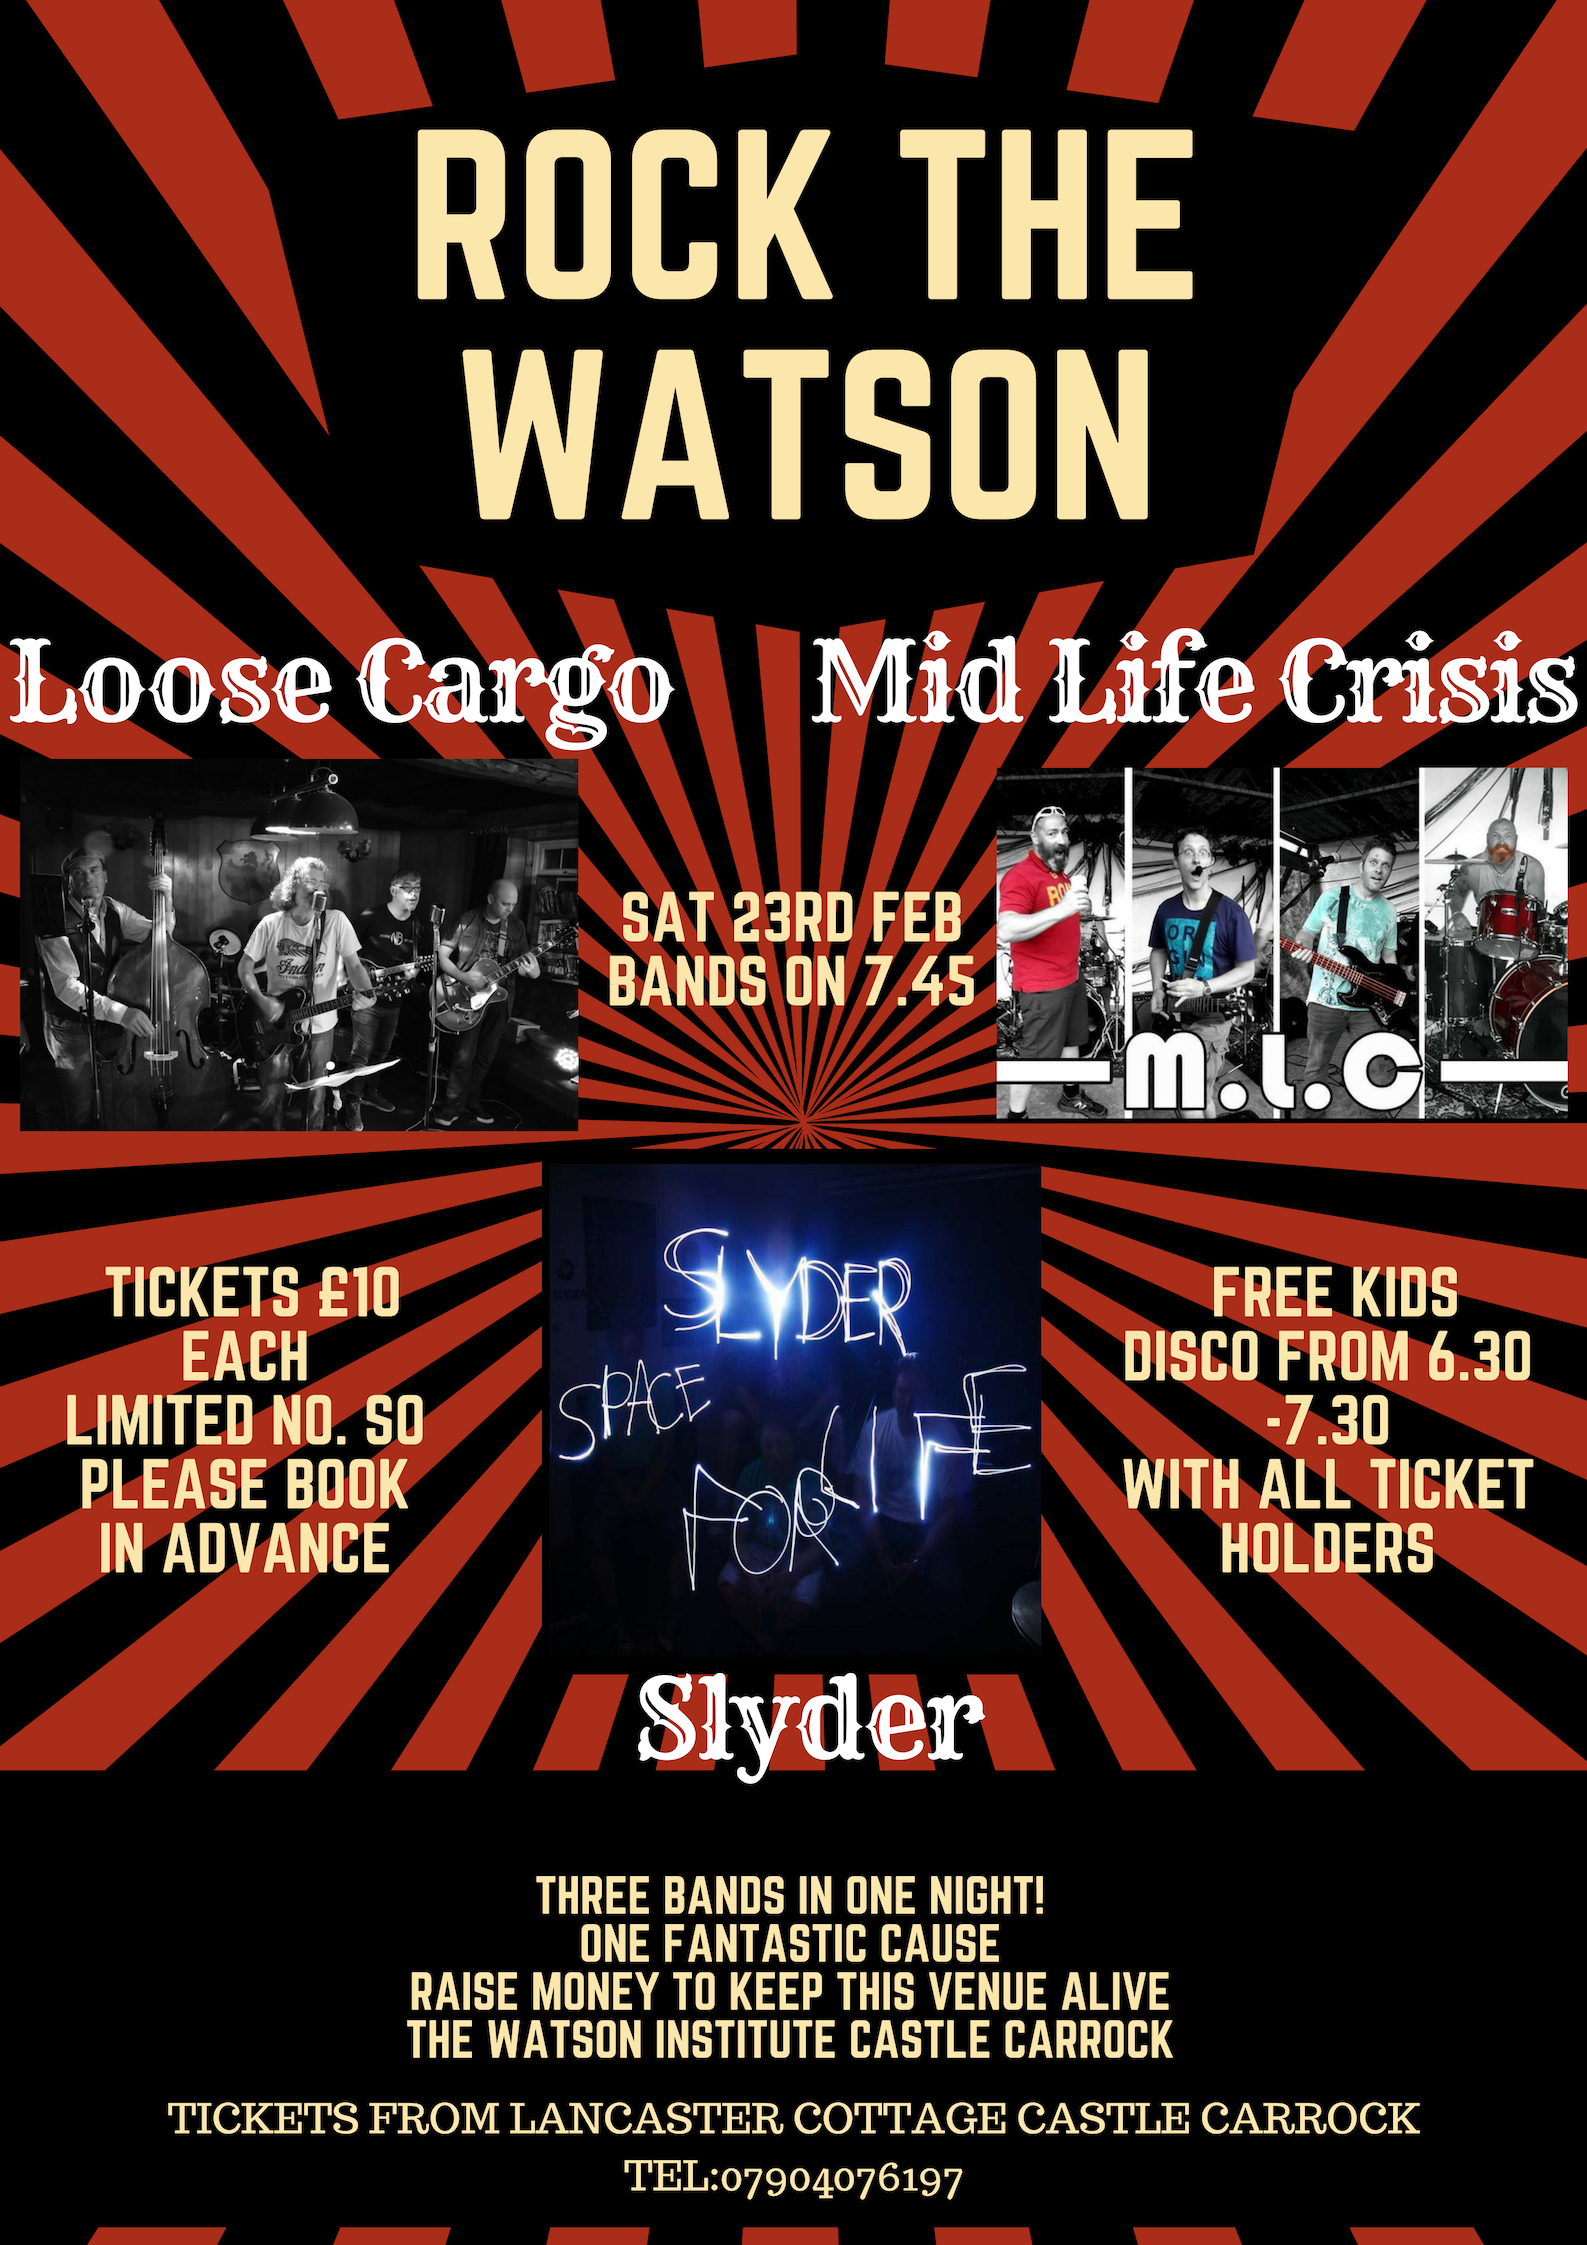 Rock The Watson on Saturday February 23rd